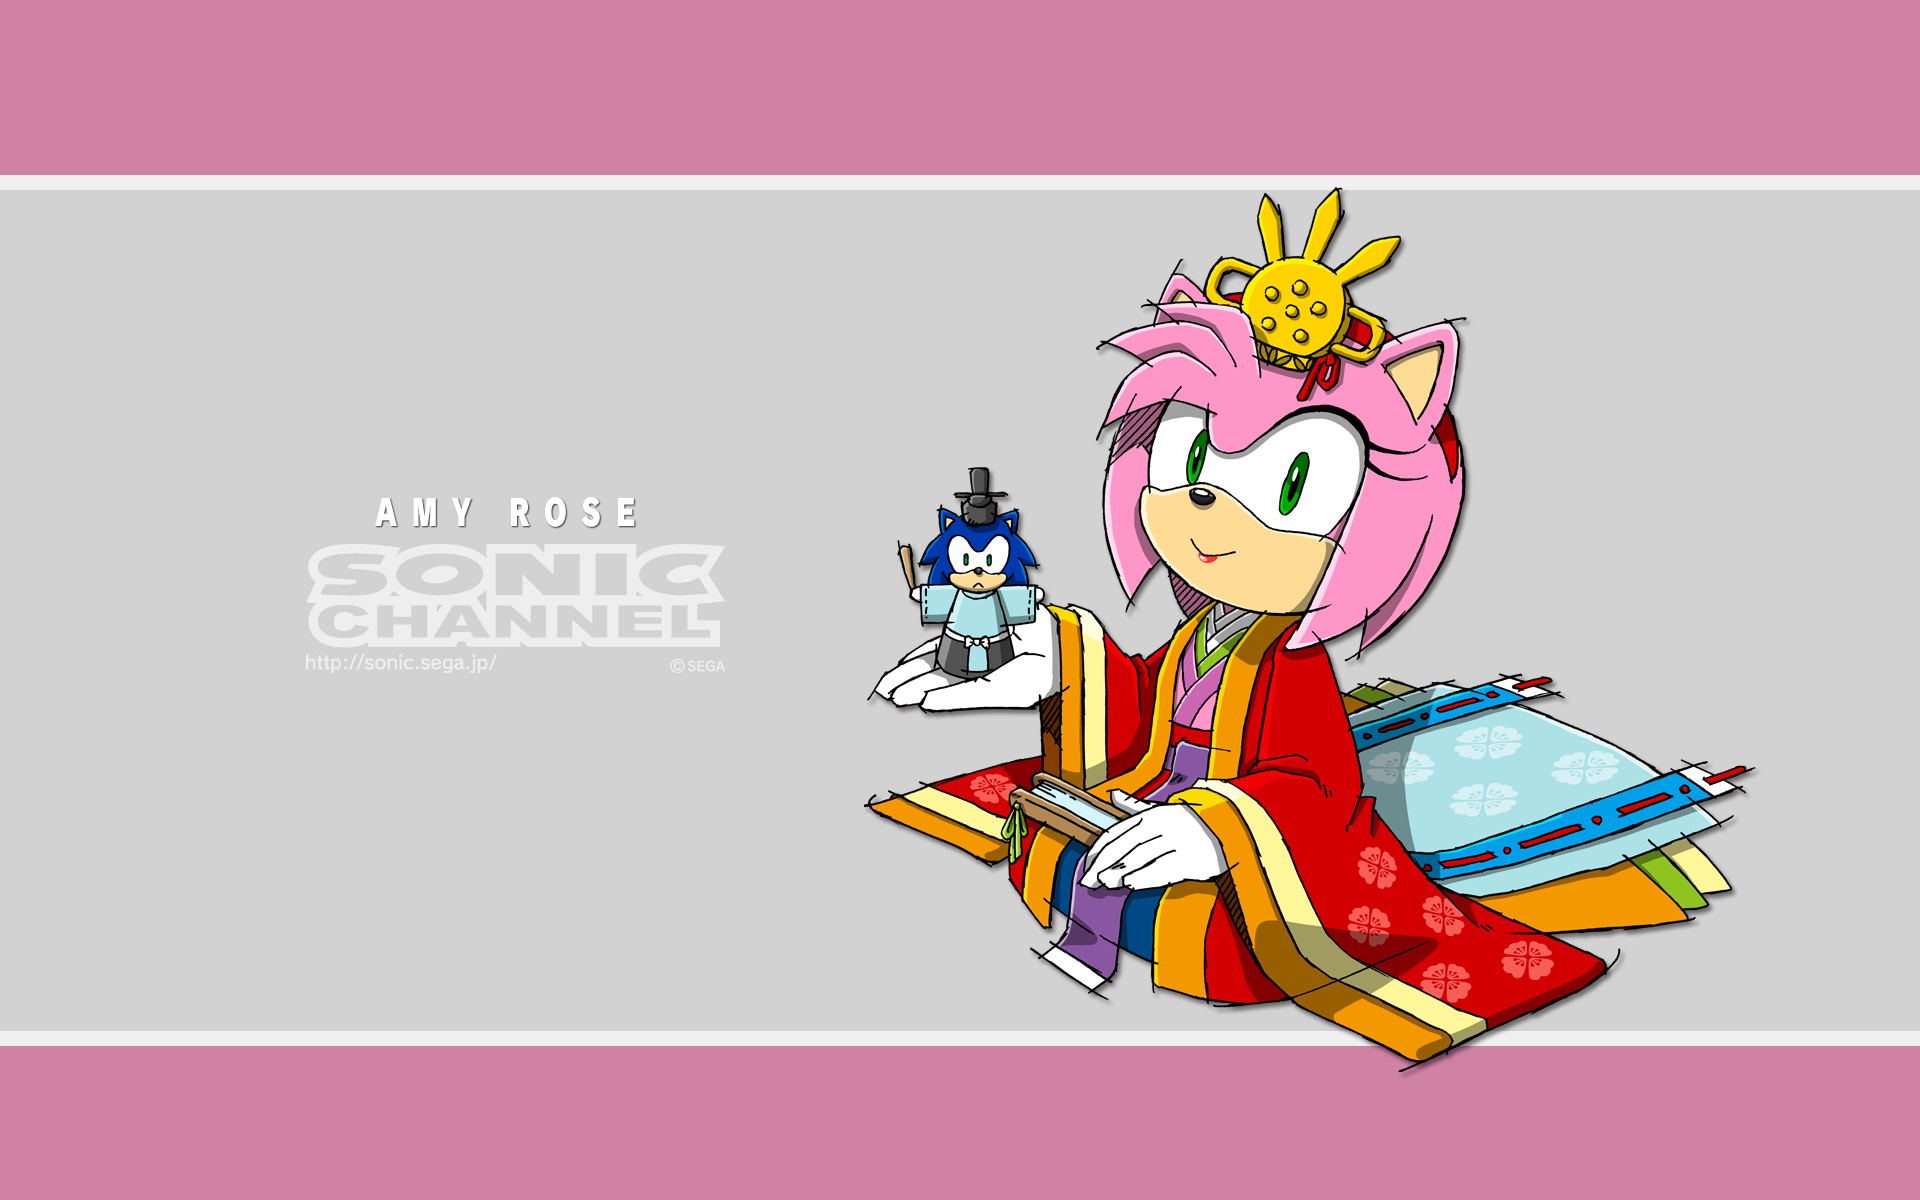 Amy Rose March 2014 Sonic Channel Wallpaper Translations